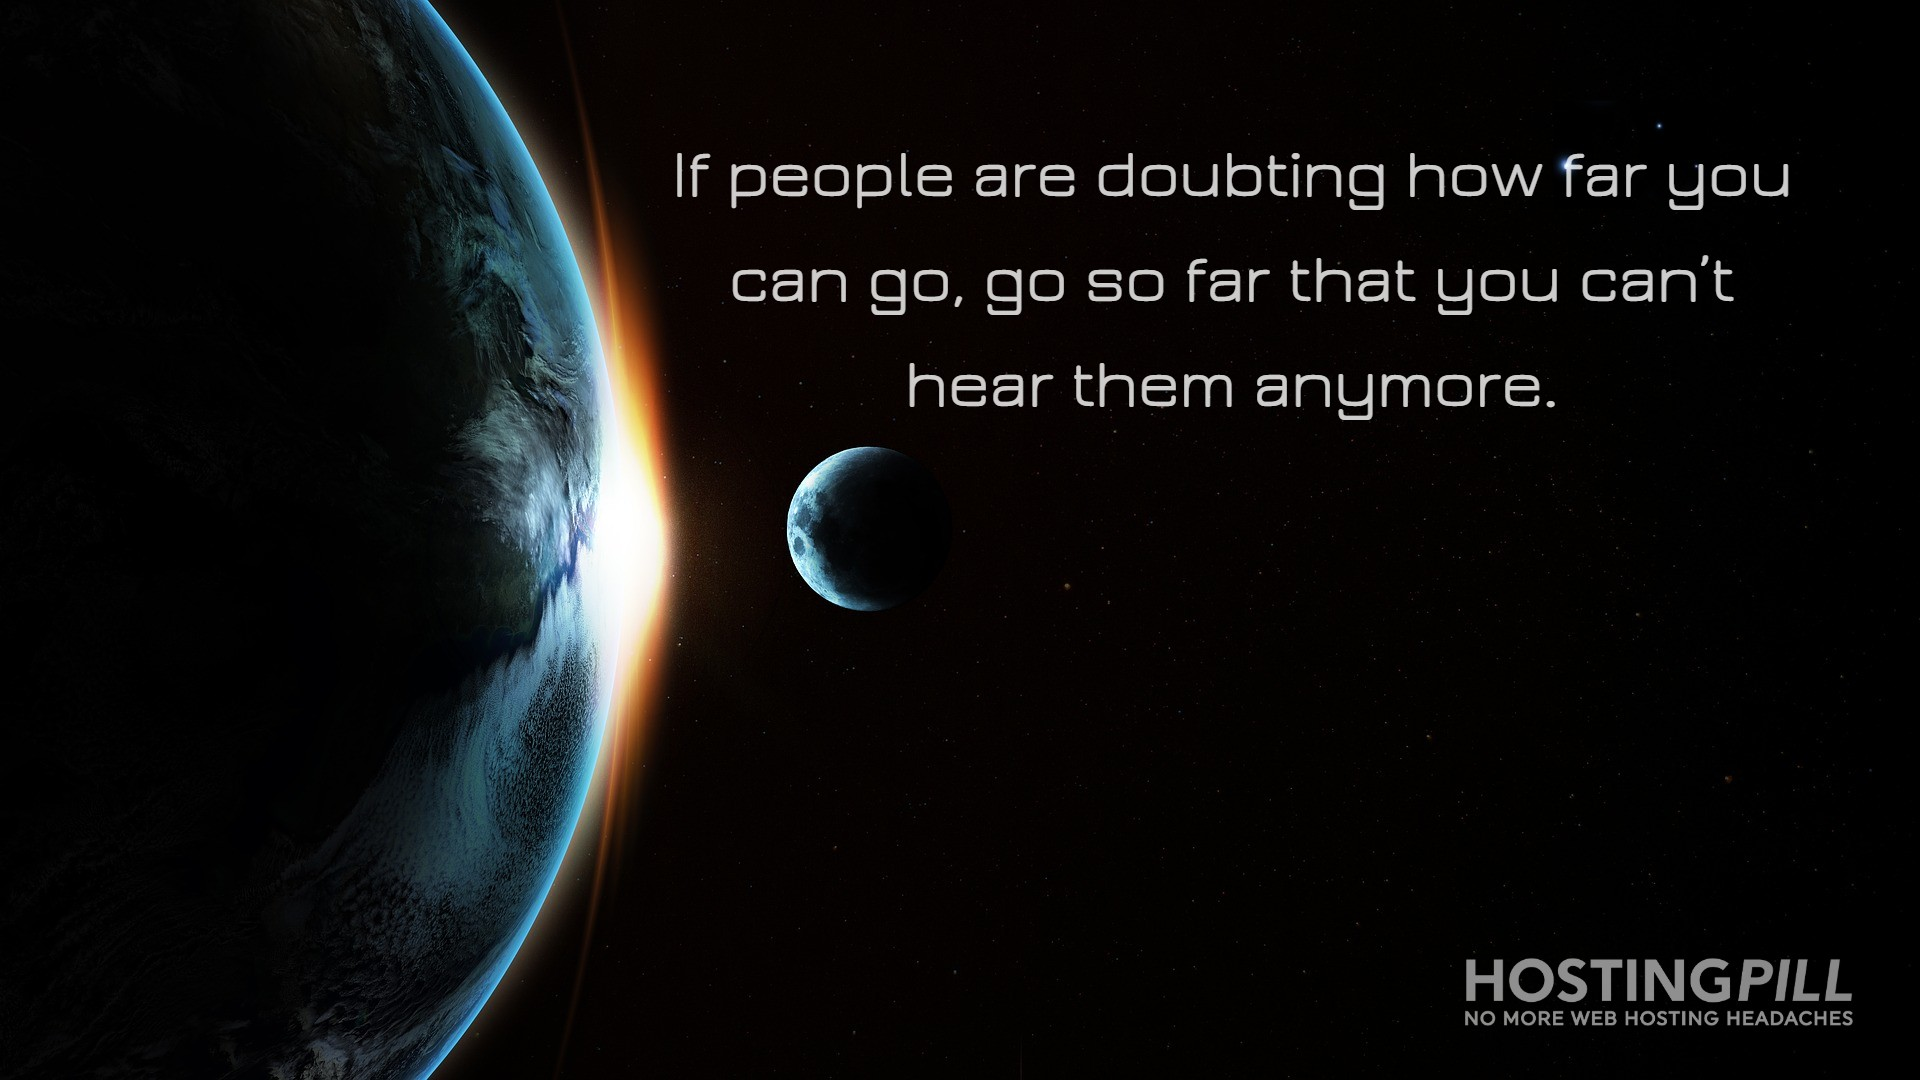 If people are doubting how far you can do, go so far that you can't hear them anymore